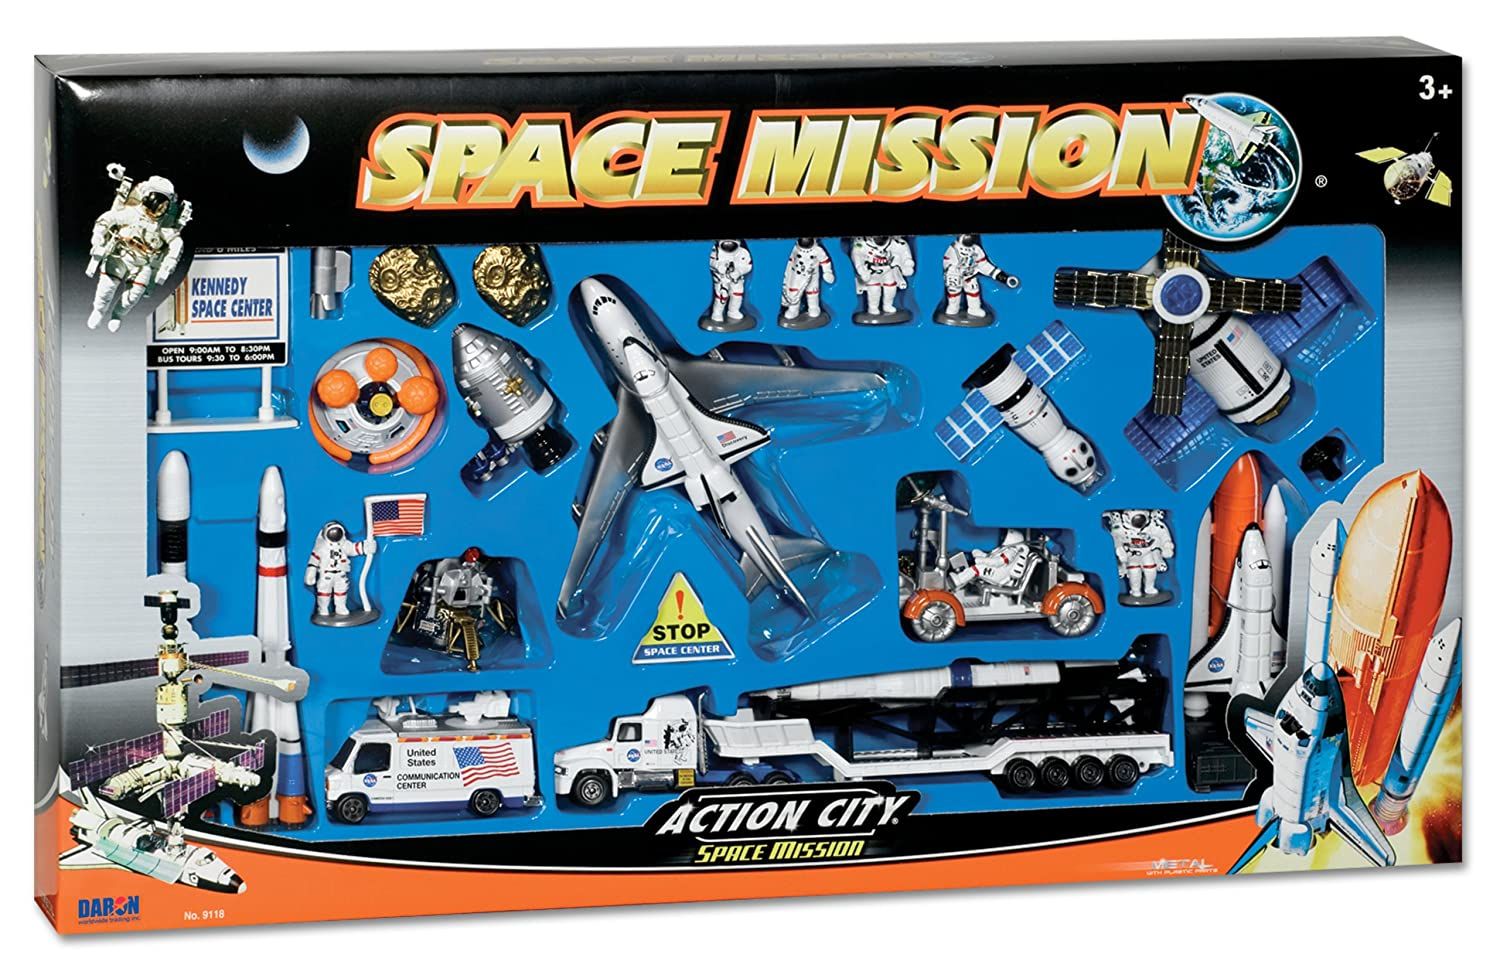 Space Shuttle with Kennedy Space Center Sign 28 Piece Daron Worldwide Trading inc RT 38148